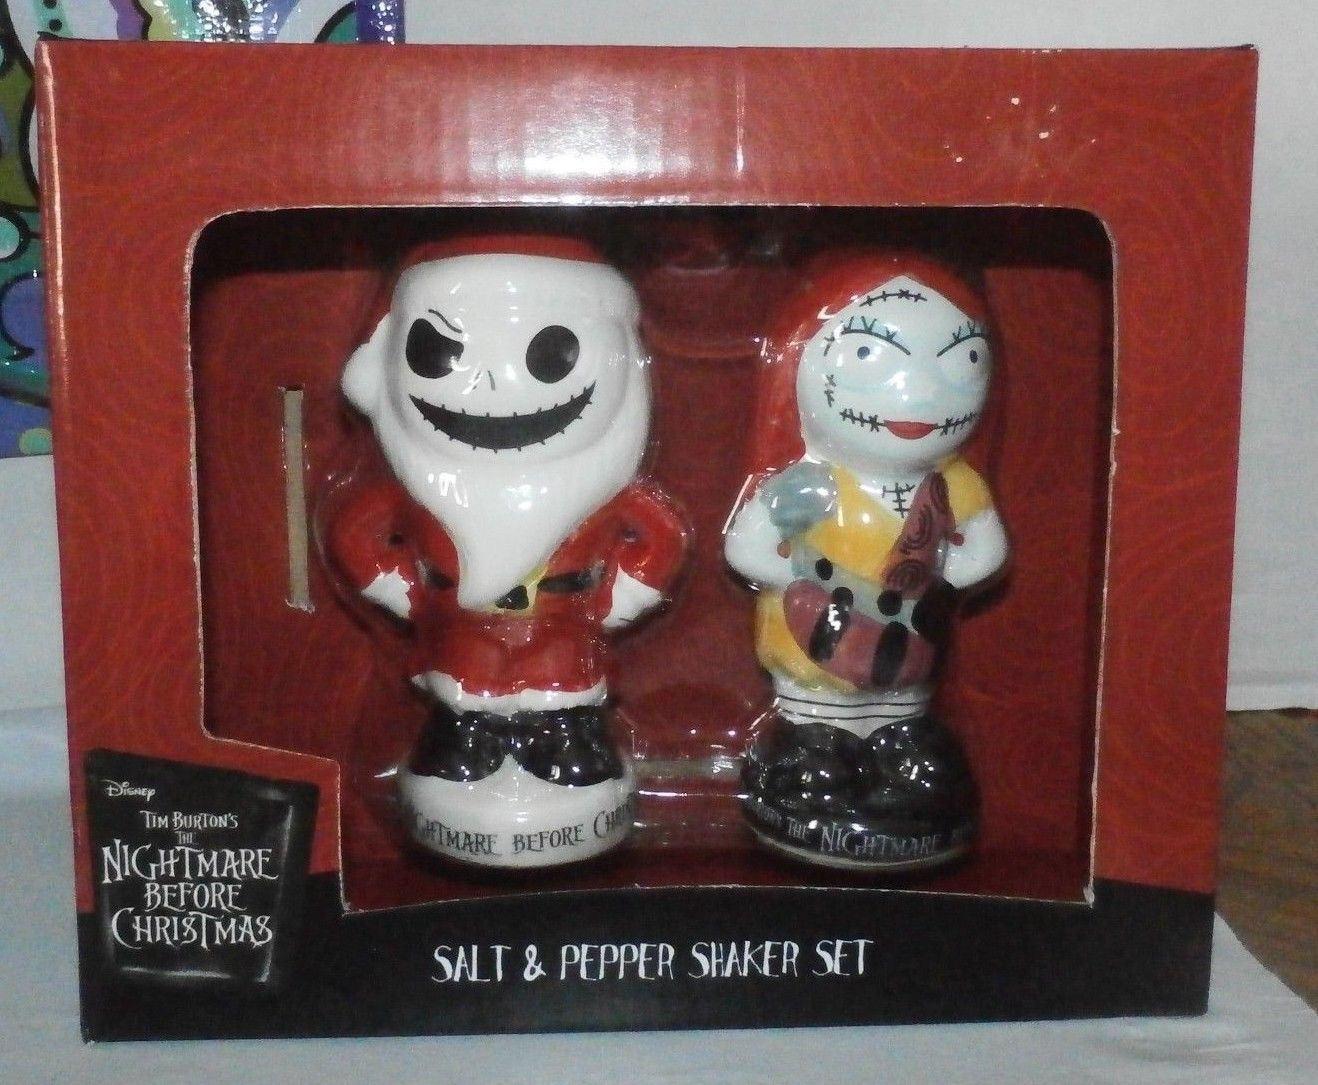 The Nightmare Before Christmas Santa Jack and similar items